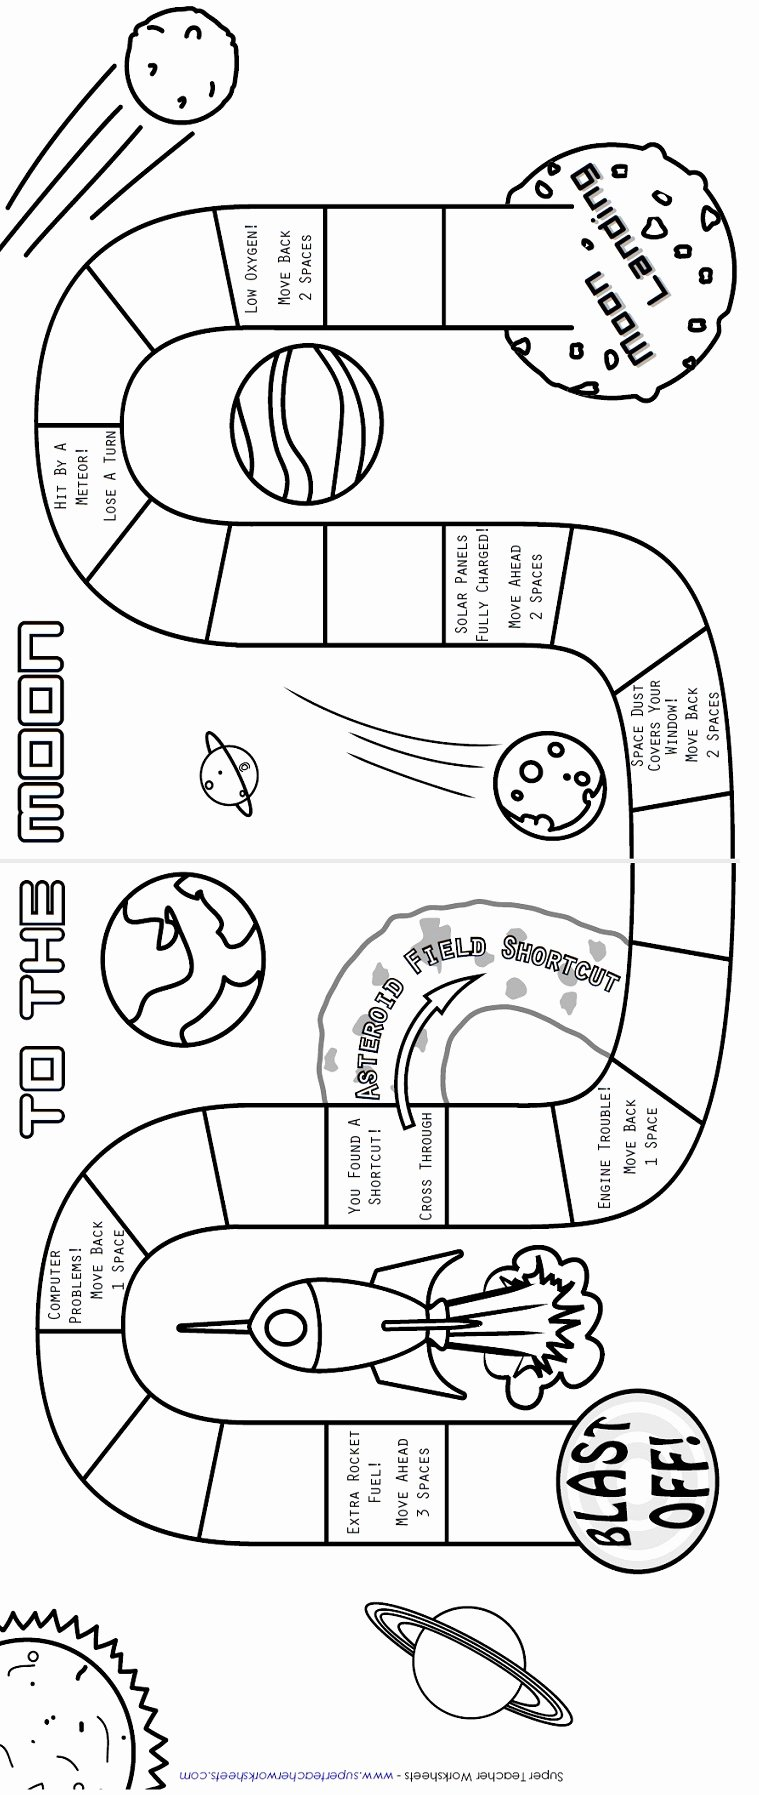 Planet Worksheets for Preschoolers Best Of solar System and Planets Worksheets